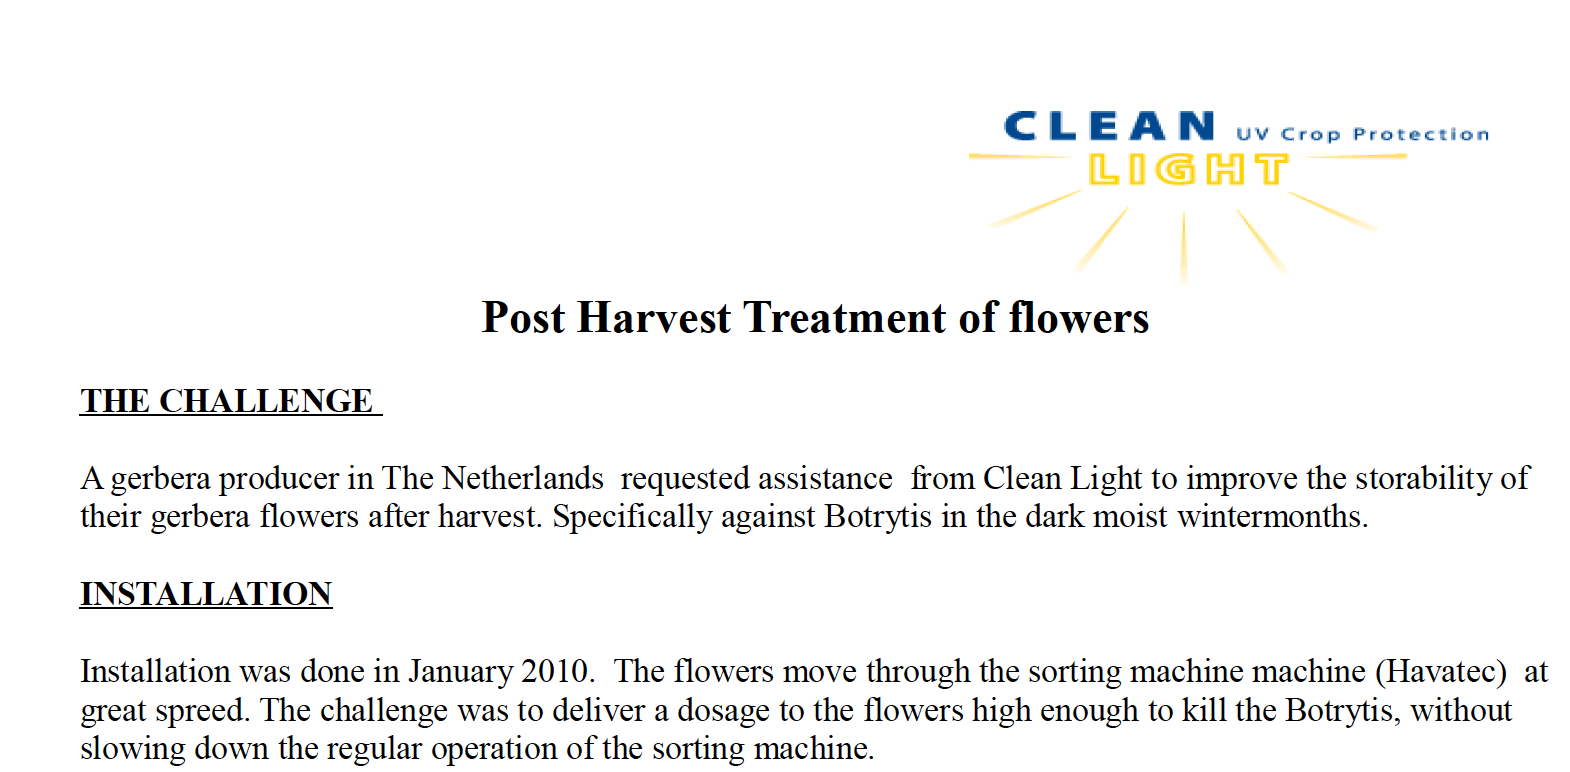 Post Harvest Treatment of Flowers